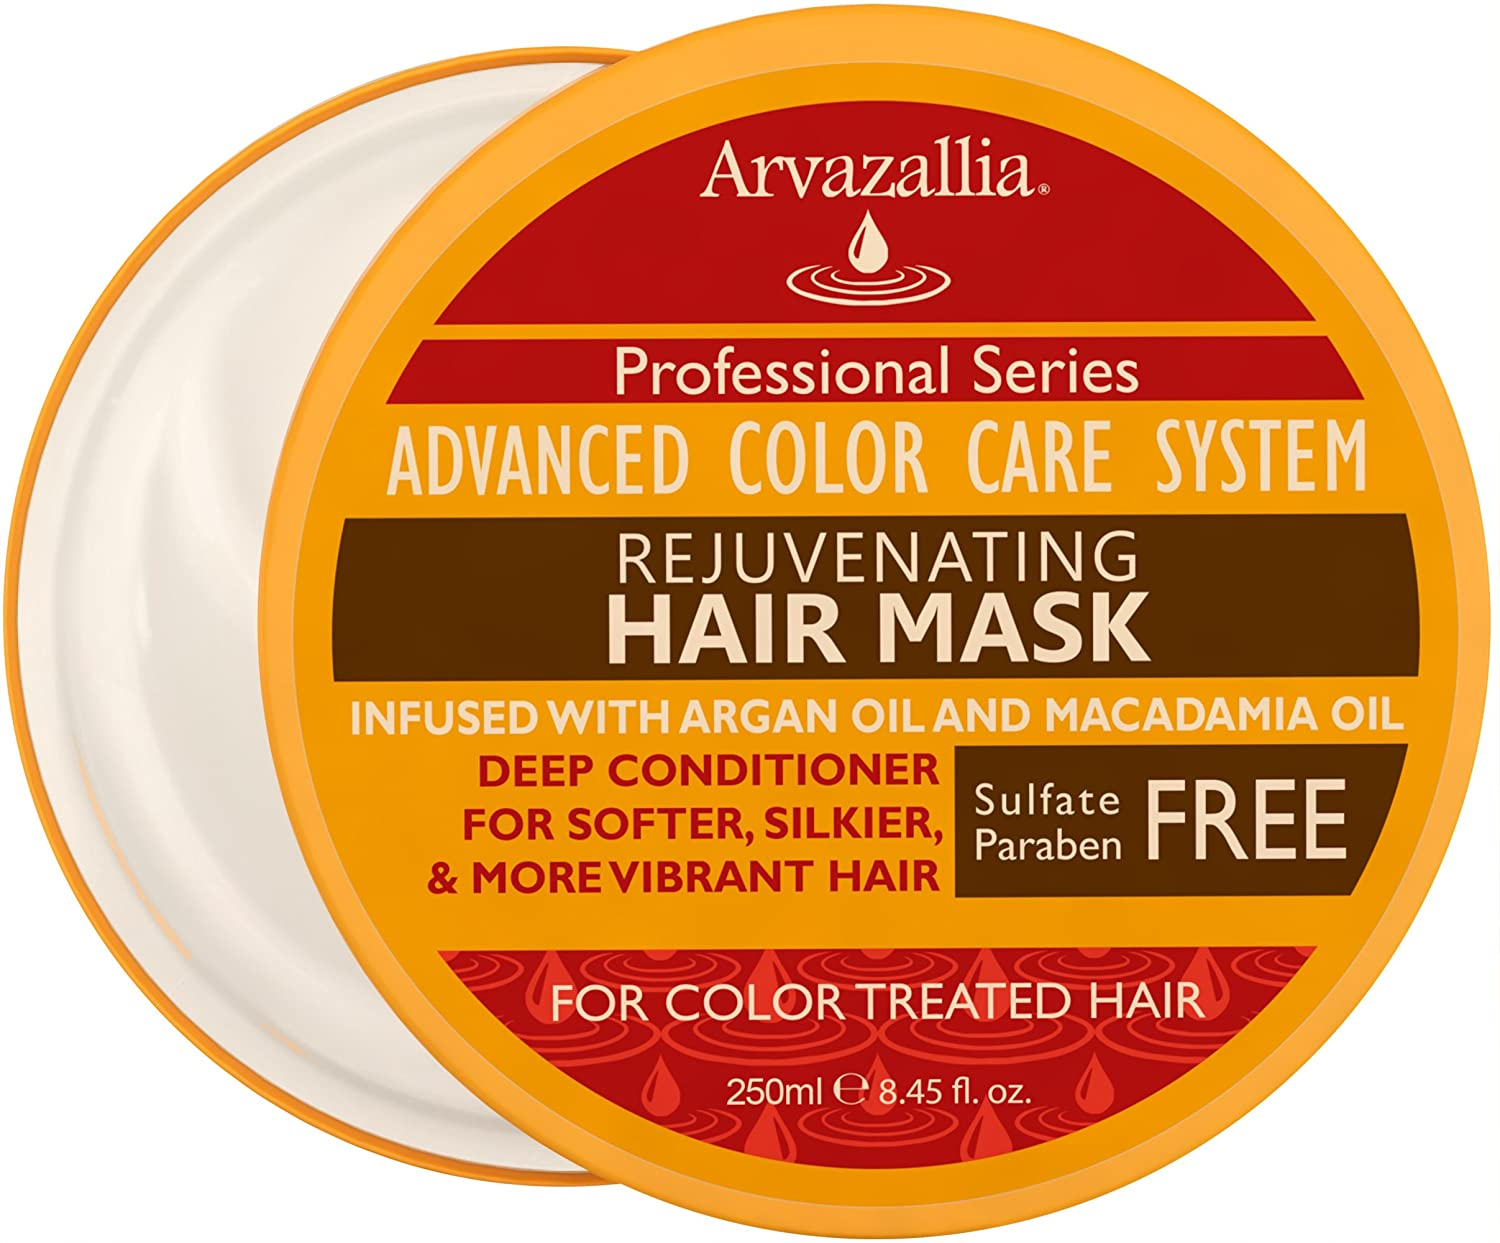 Rejuvenating Hair Mask and Deep Conditioner For Color Treated Hair with Argan Oil and Macadamia Oil By Arvazallia - Sulfate Free & Paraben Free ACCS-MSK